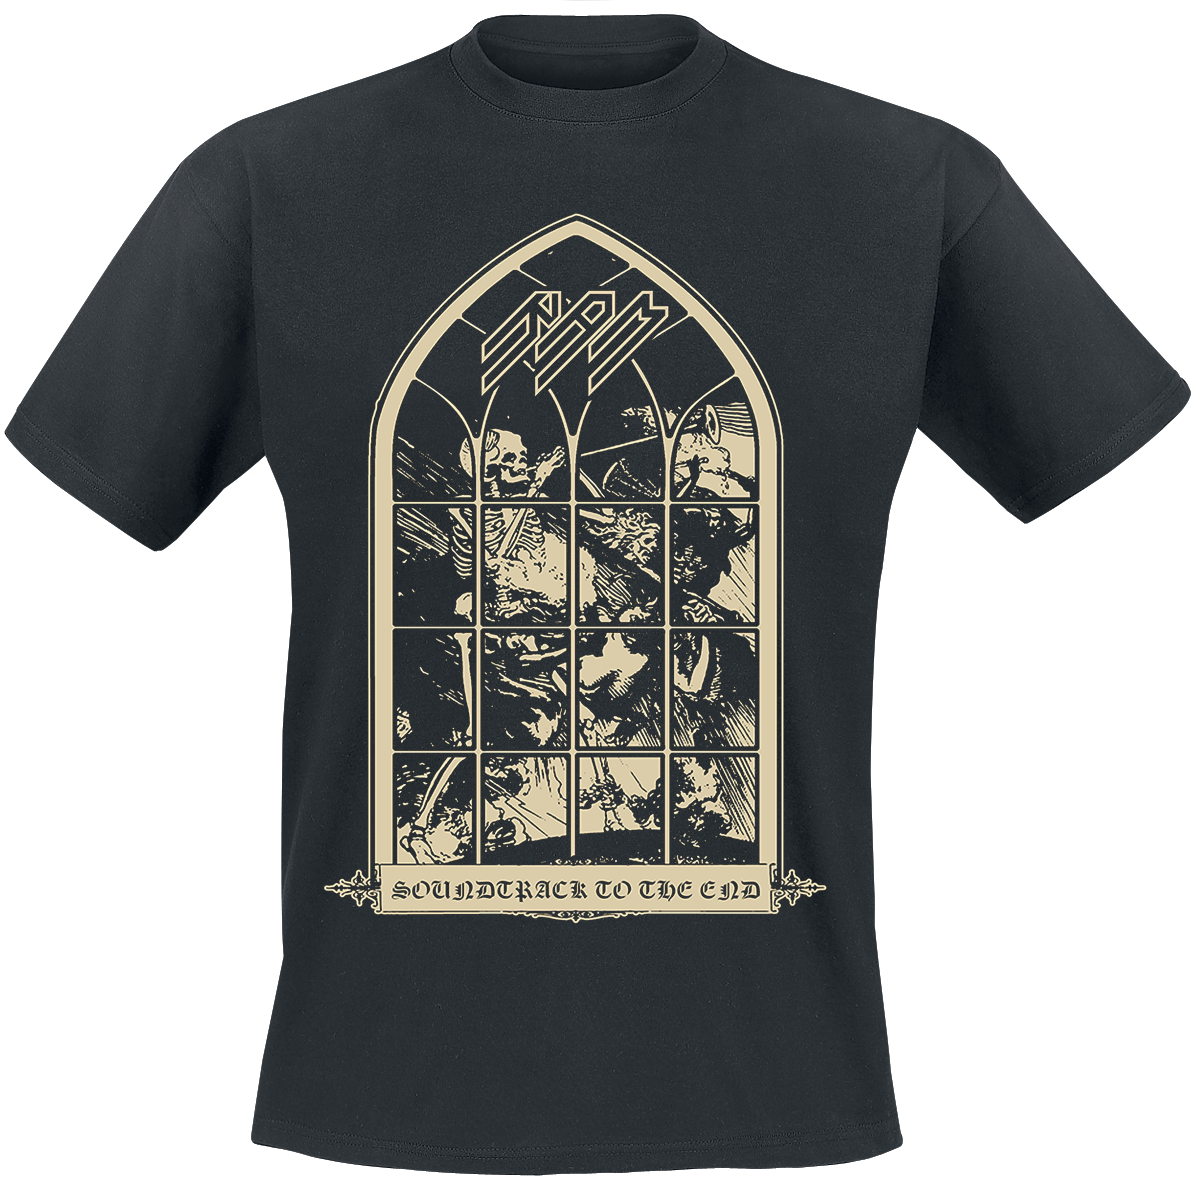 Image of Ram The throne within 2-CD & Patch & T-Shirt Standard